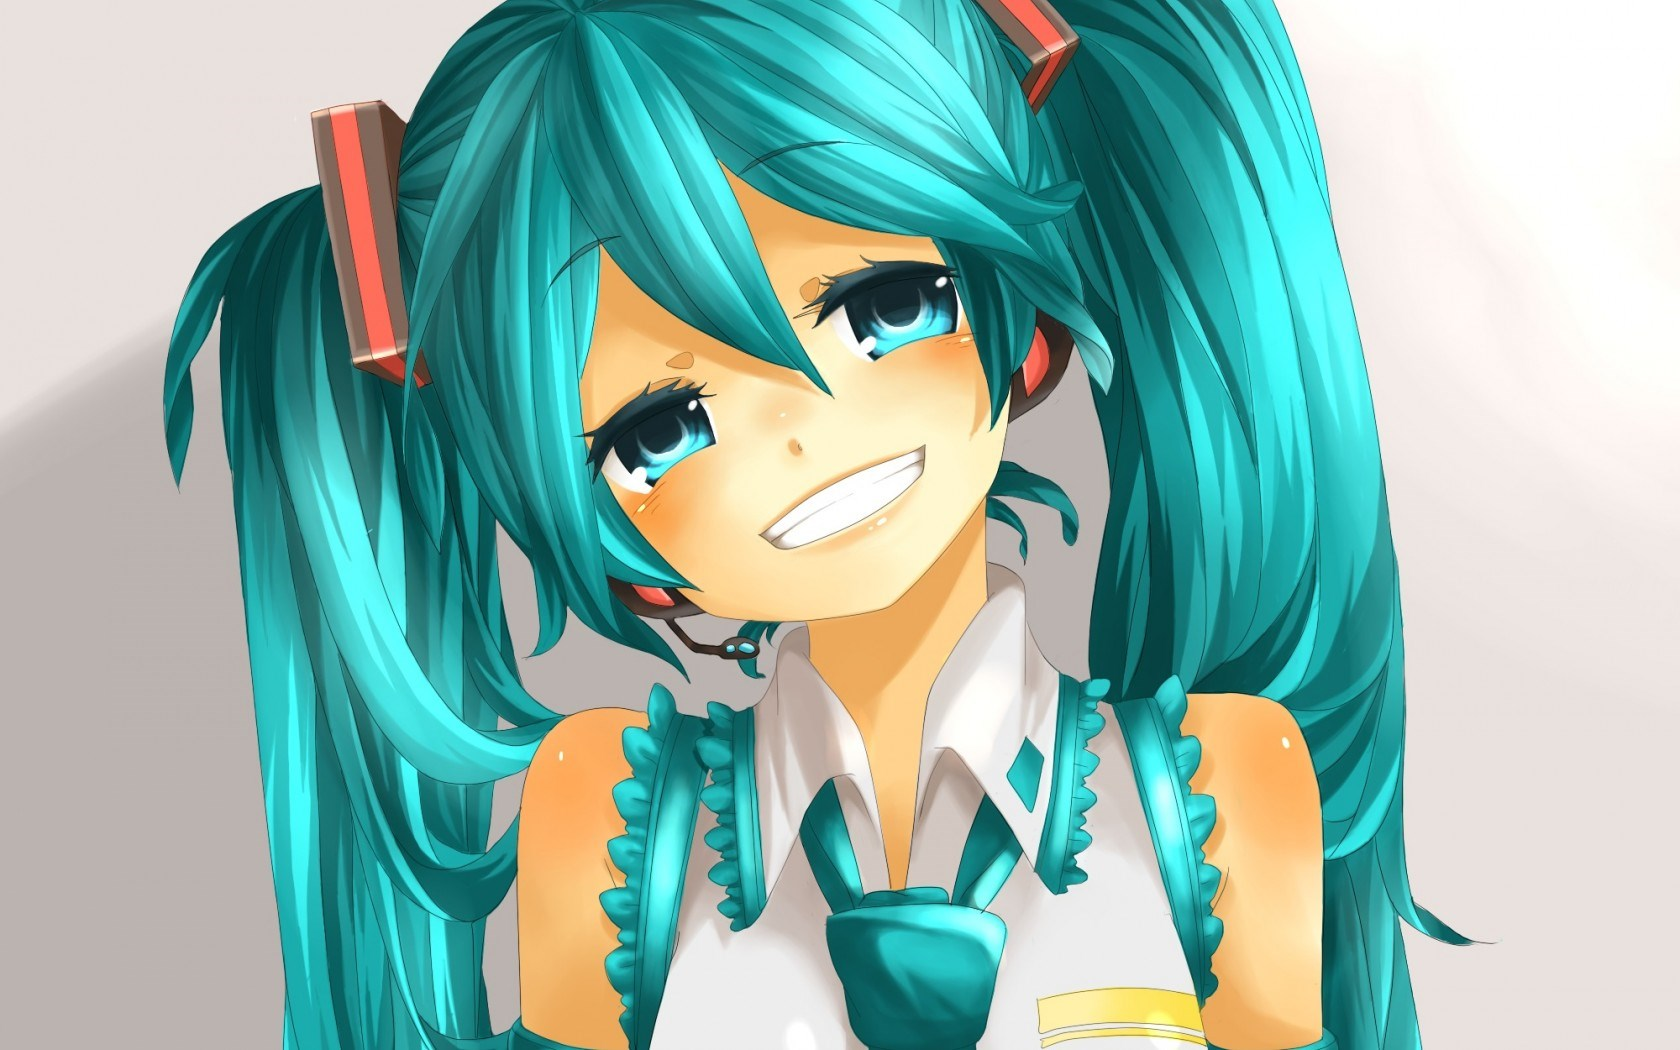 Art Vocaloid Hatsune Miku Girl Smile Anime